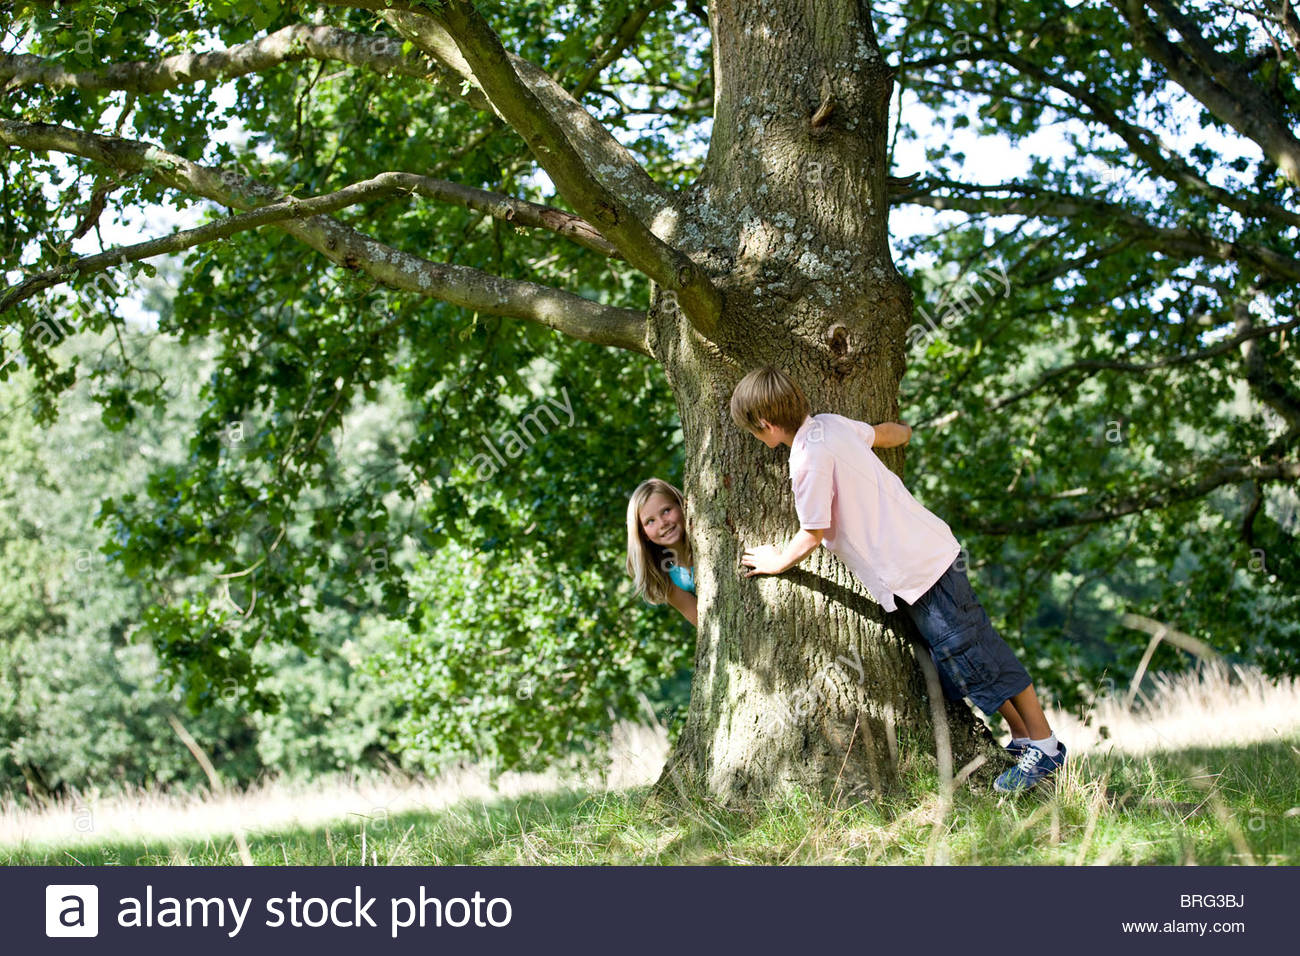 A young boy and girl playing hide and seek - Stock Image